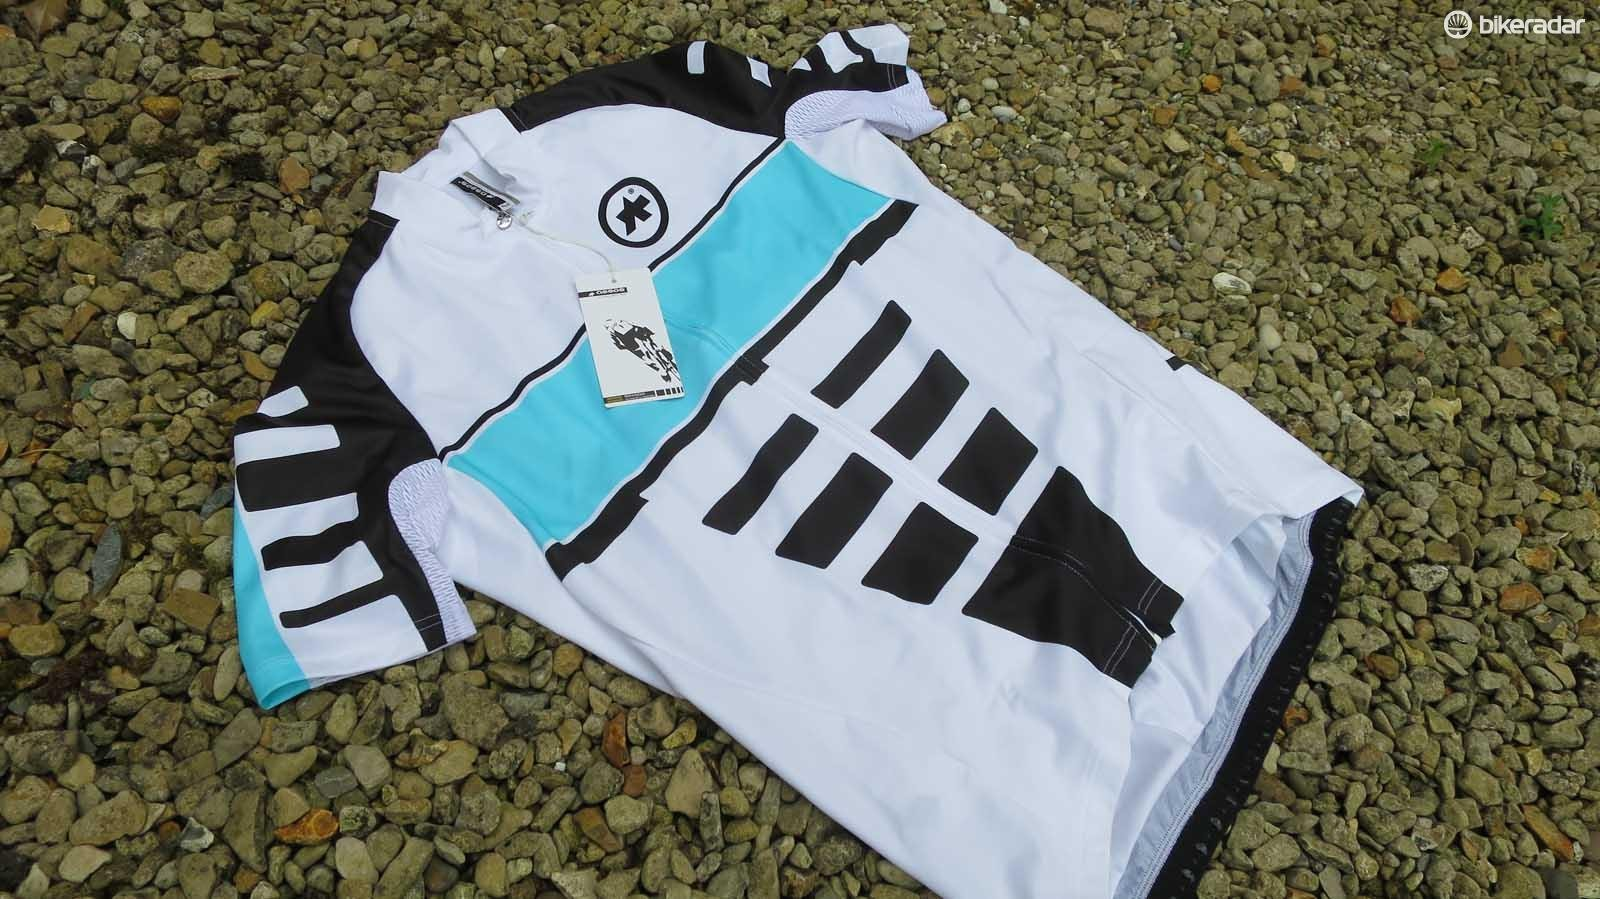 The corporate jersey comes in five different colour versions